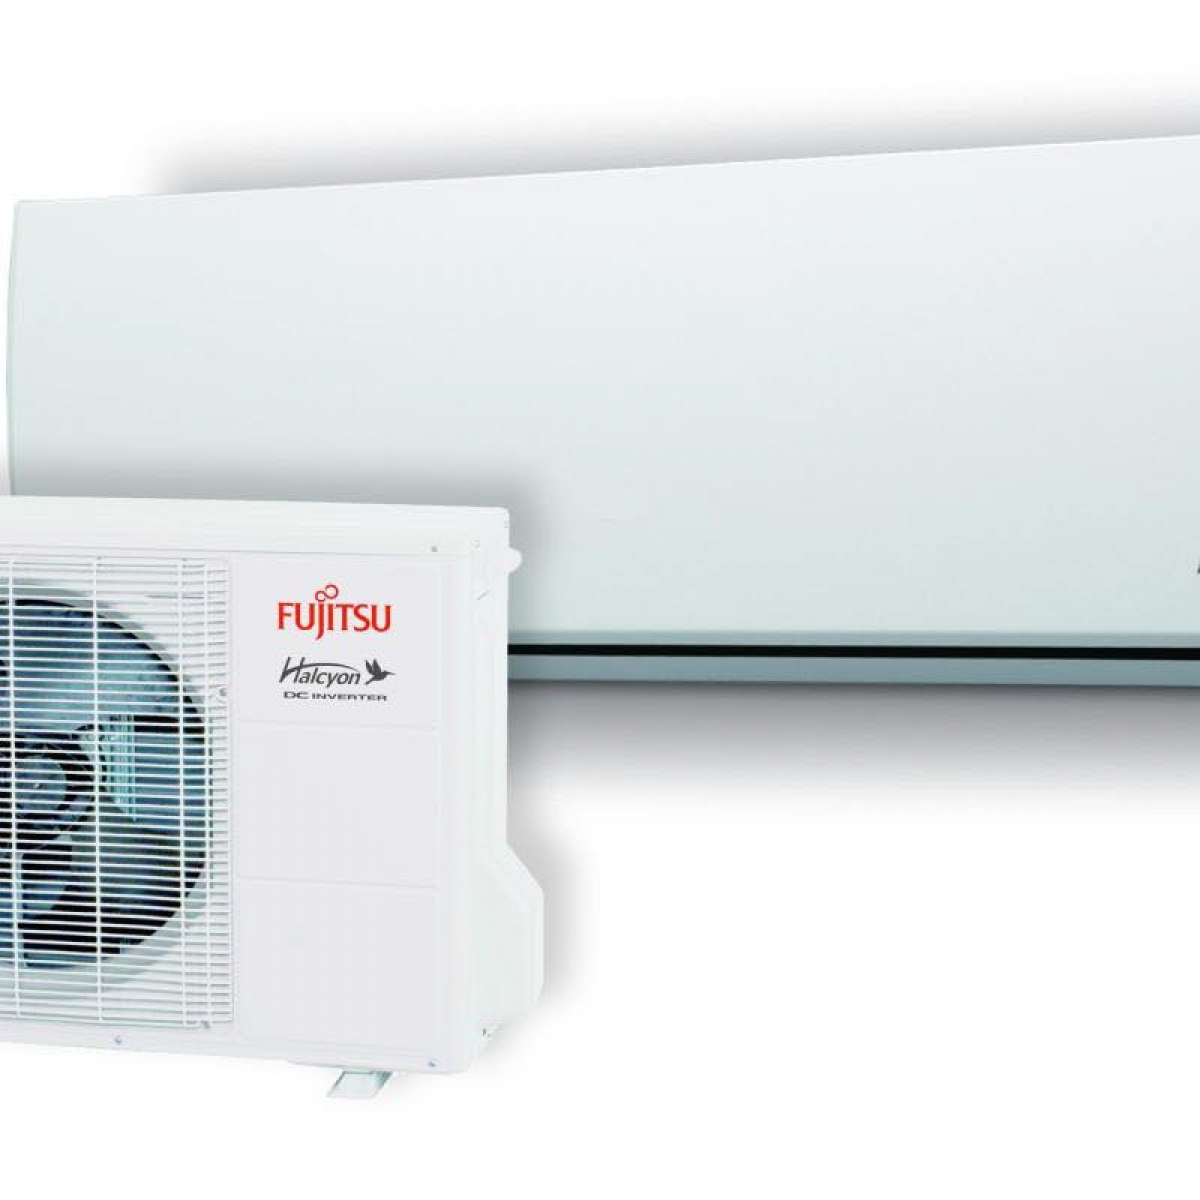 Fujitsu Halycon15RLS2 Ductless Mini Split Heat Pumps Quadomated #AC401F